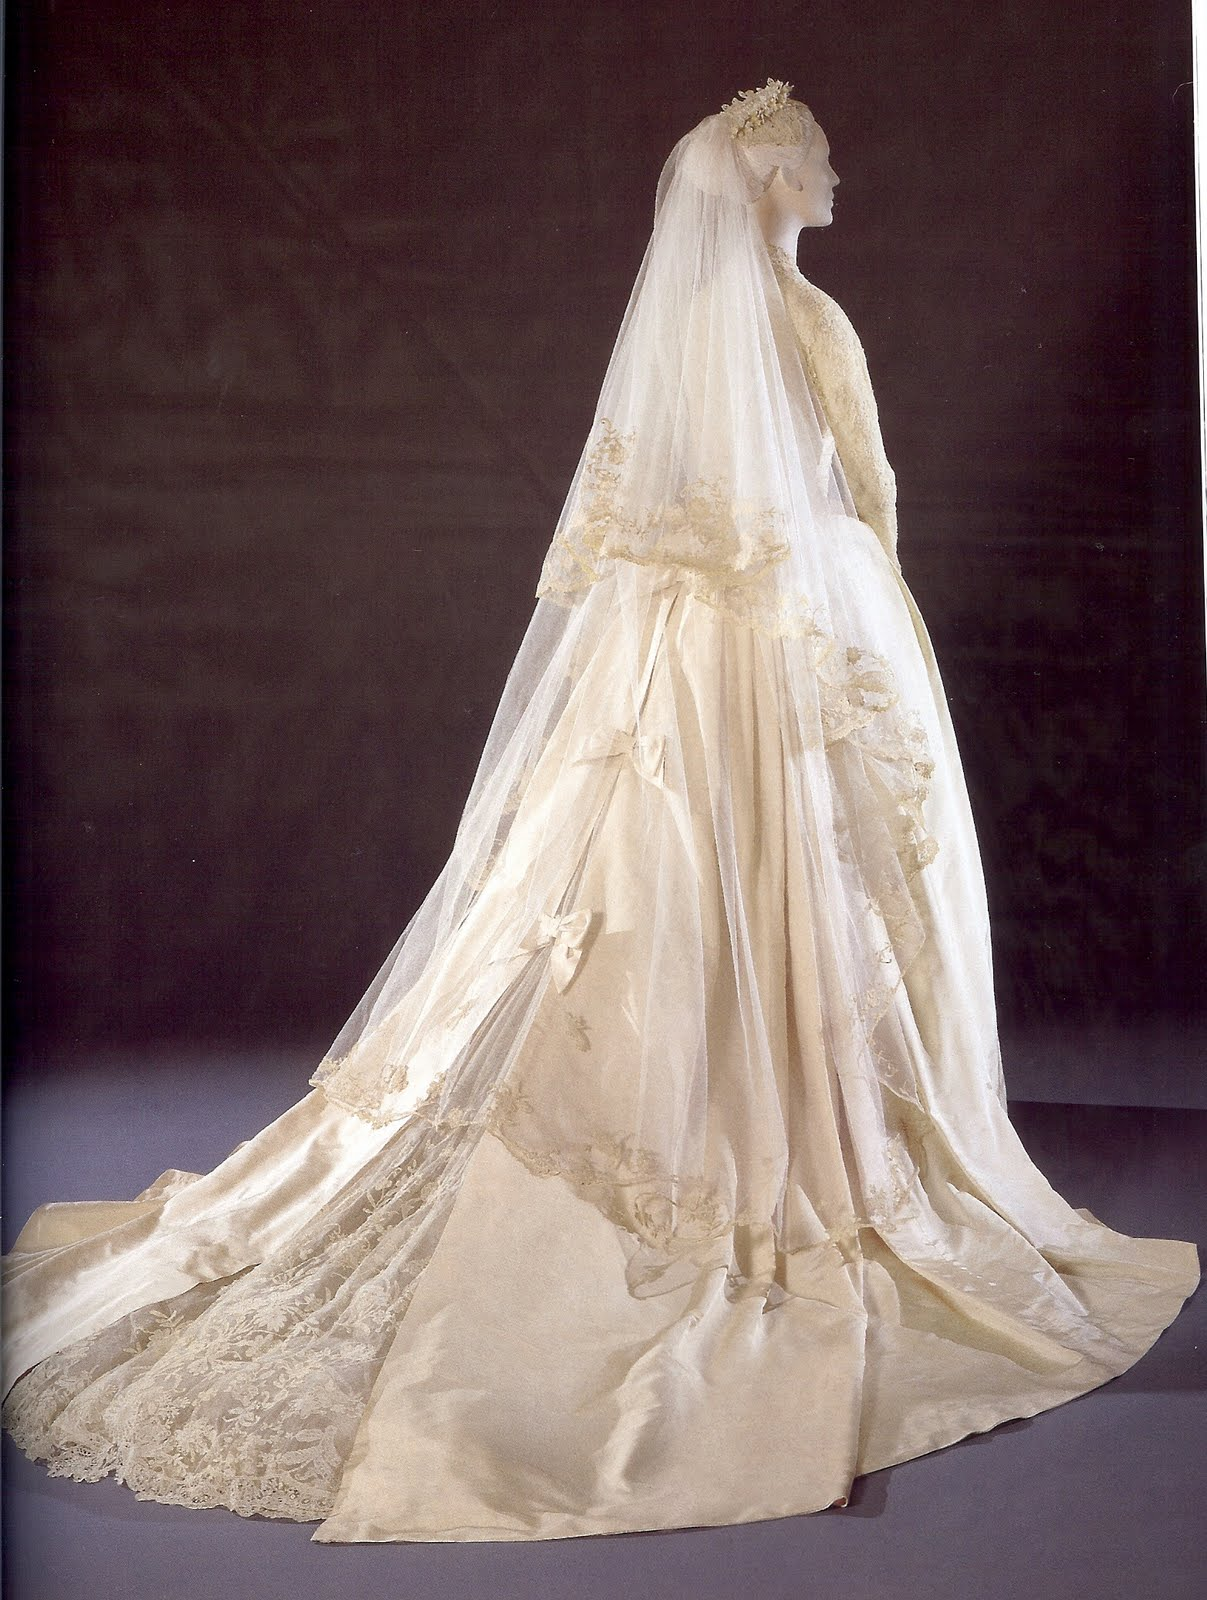 The detailling of the dress from the back is simply stunning in fact